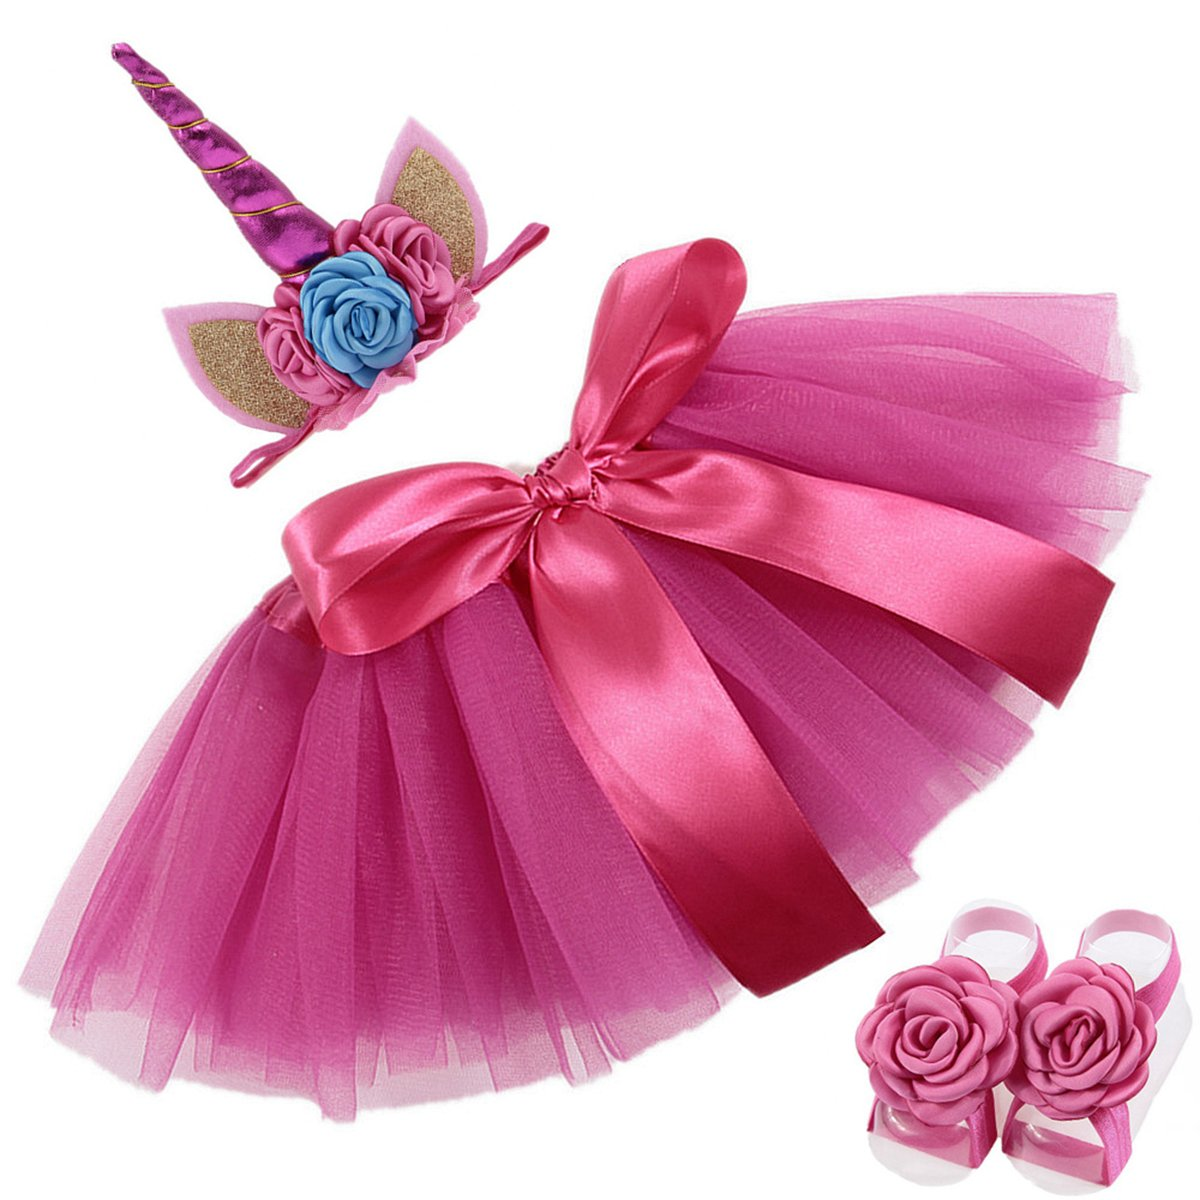 COUXILY Unicorn Solid Tutu Skirt with Unicorn Horn Headband and Pearl Flower for Baby Girls Birthday Shot